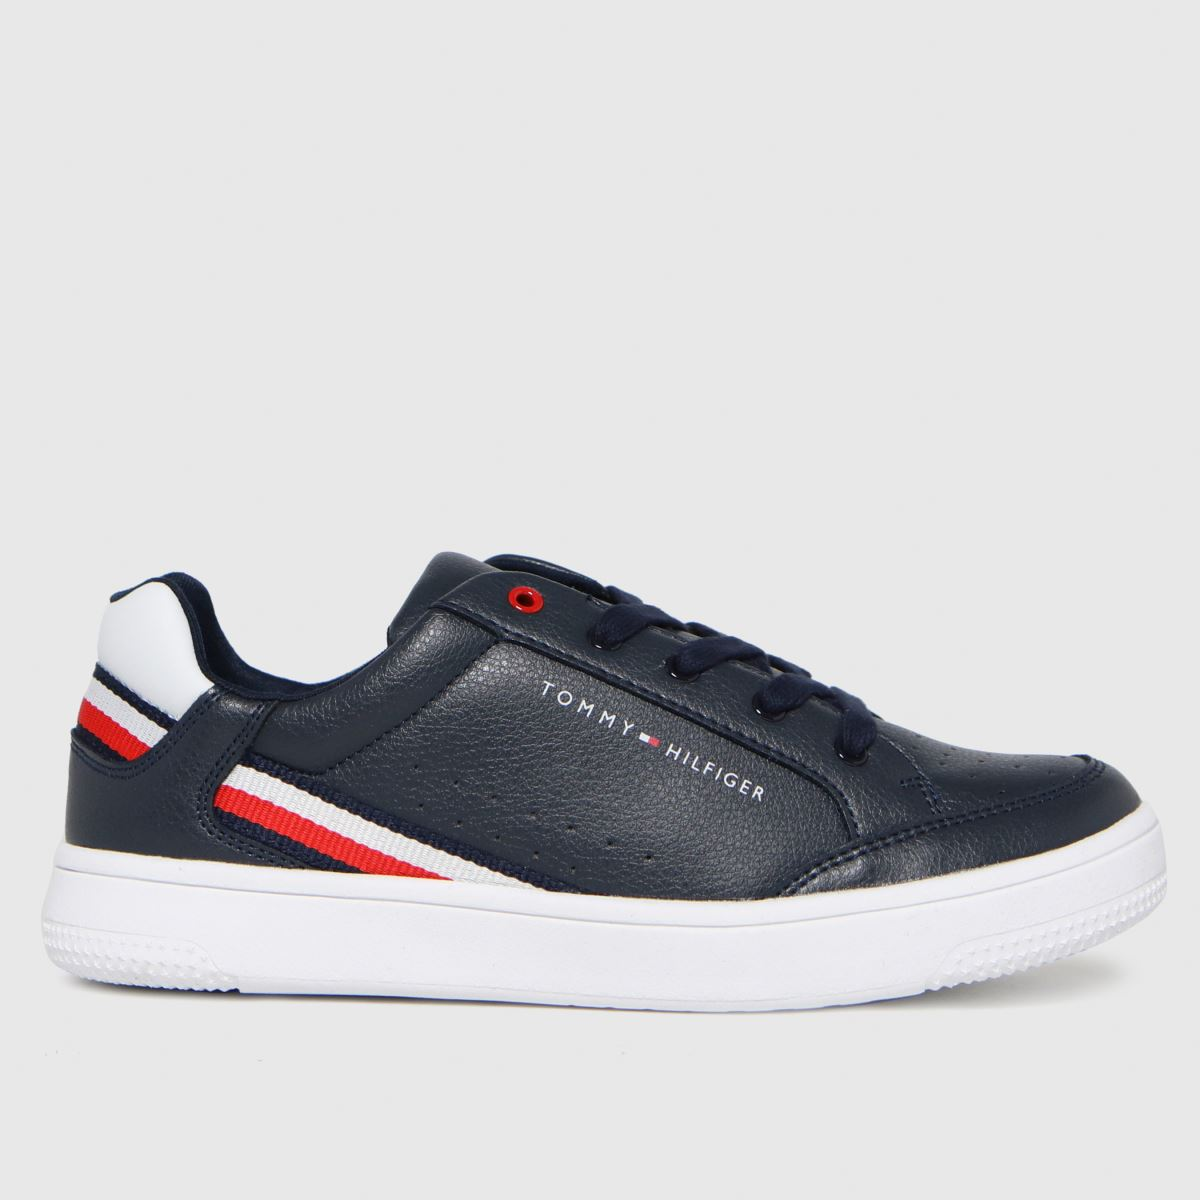 Tommy Hilfiger Navy & White Low Cut Lace-up Sneaker Trainers You